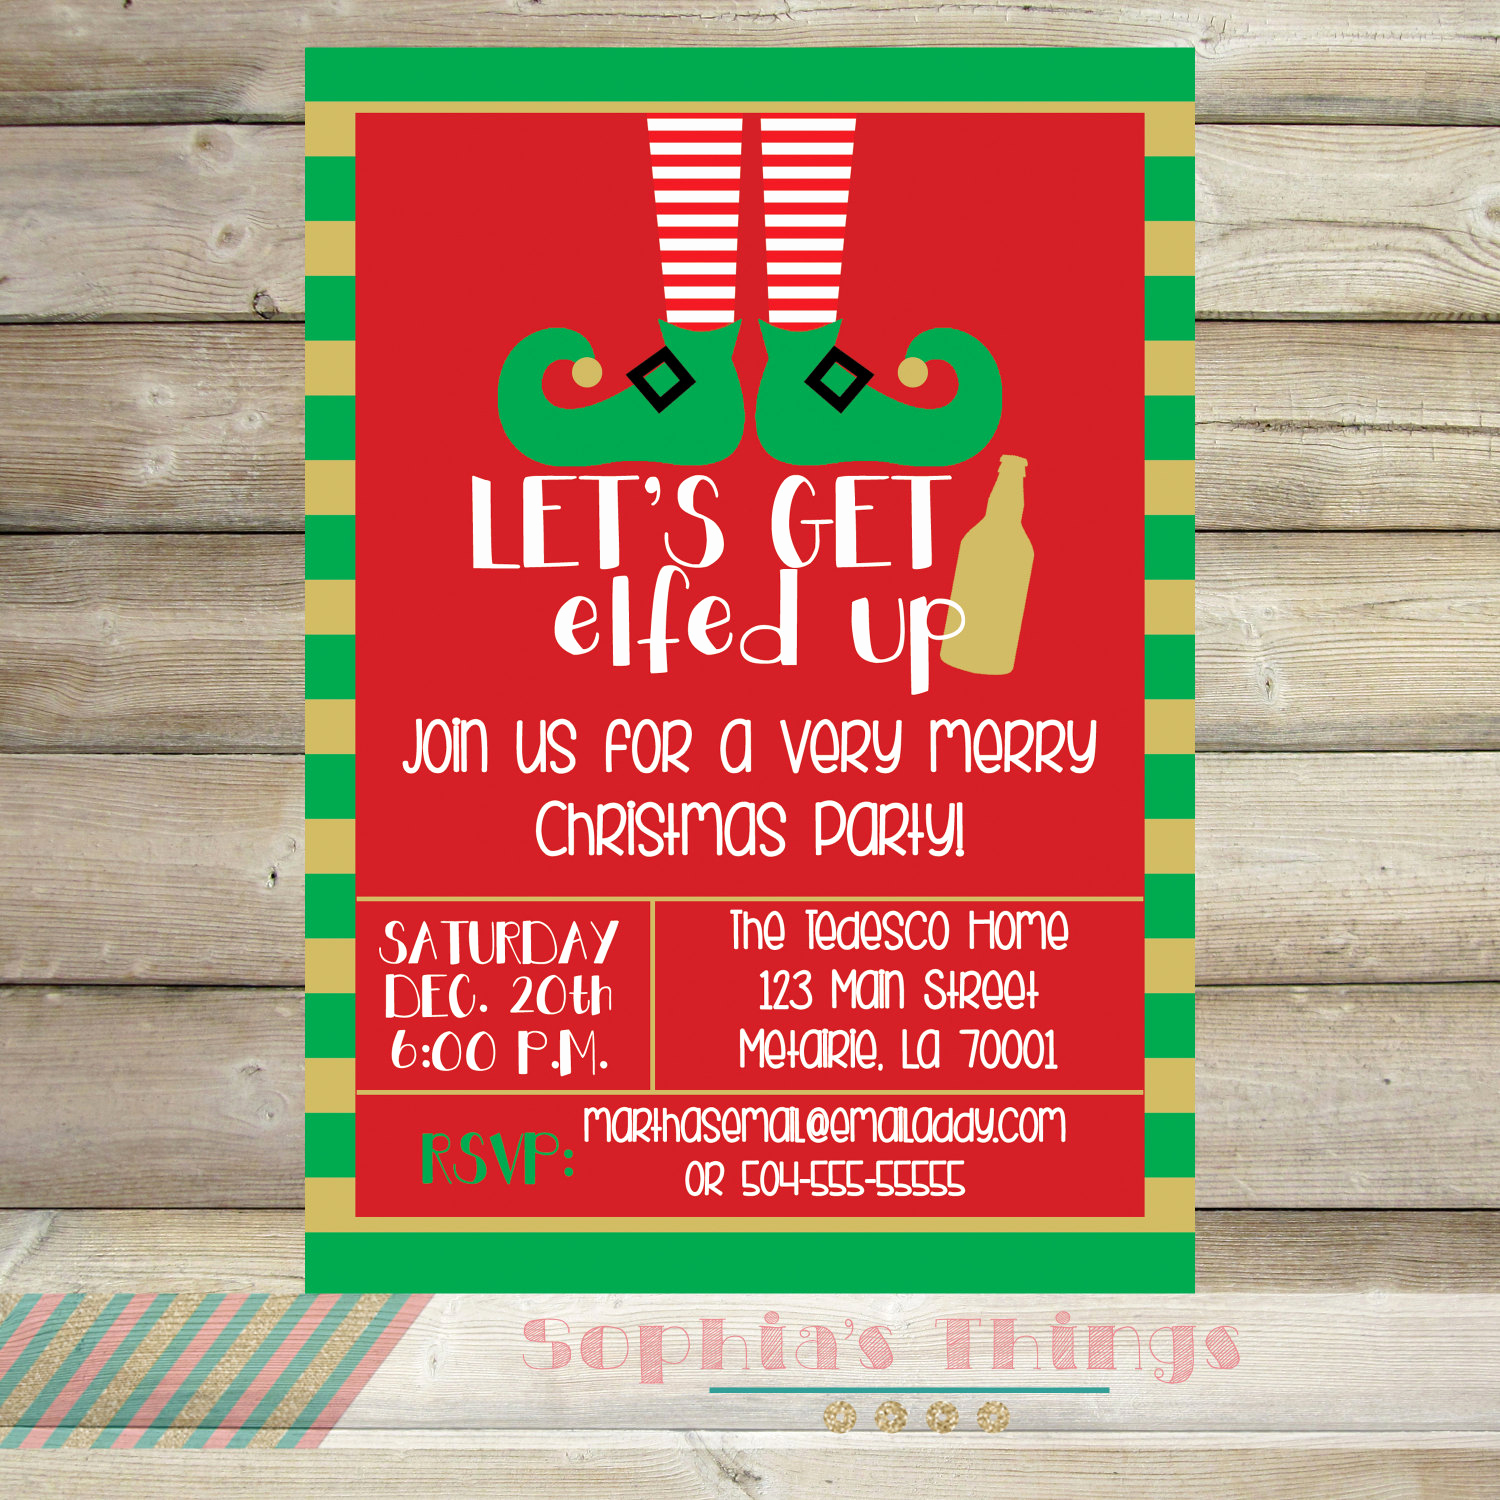 Funny Christmas Party Invitation Wording Elegant Let S Get Elfed Up Christmas Party Invitation Holiday